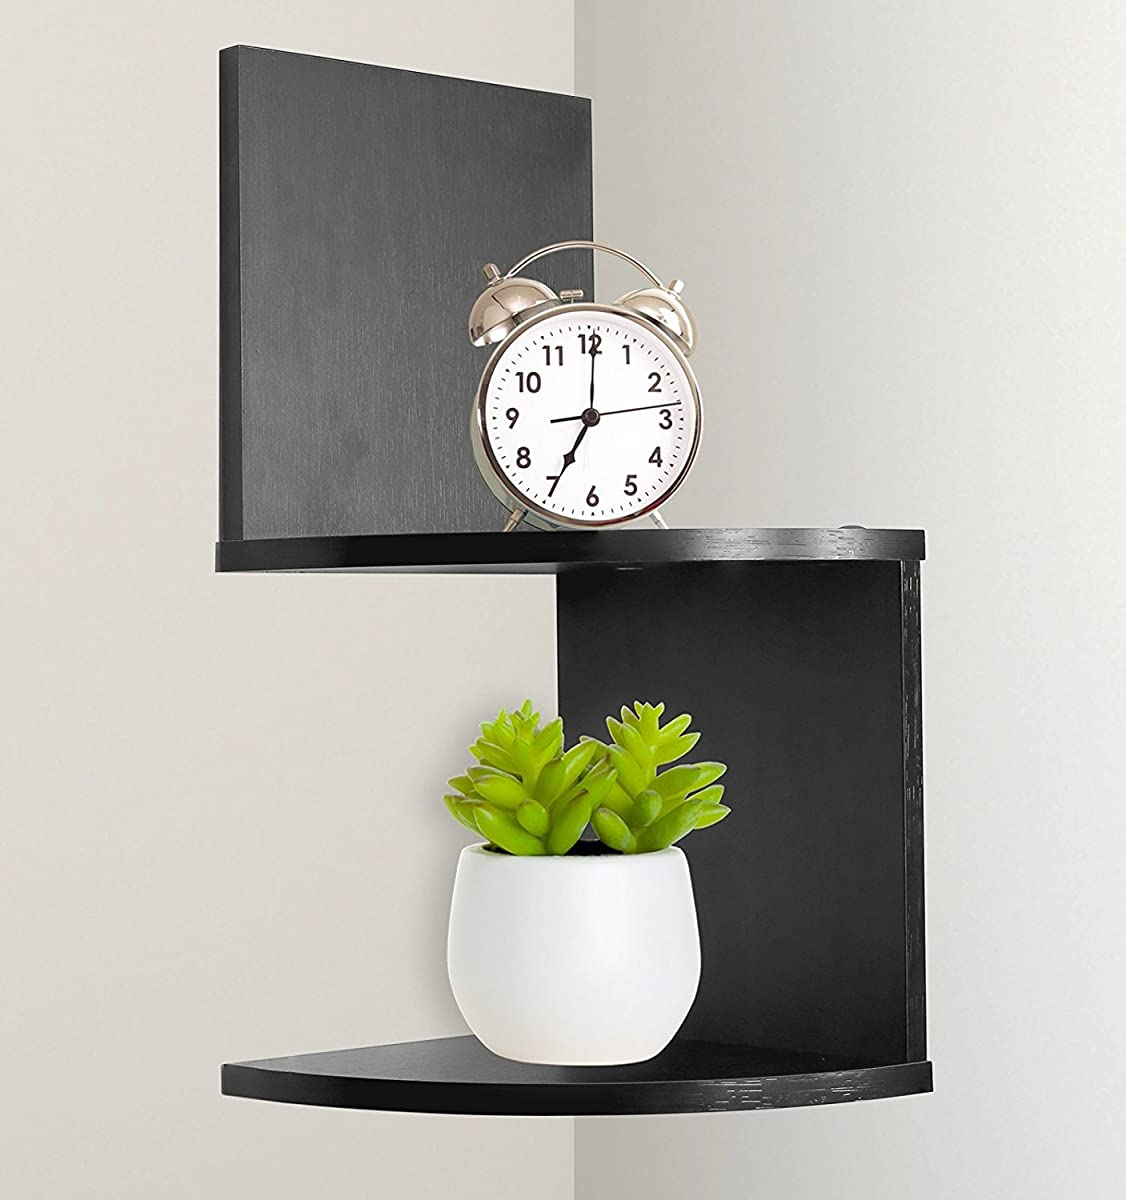 Greenco Modern Design 2 Tier Corner Floating Shelves, Espresso.